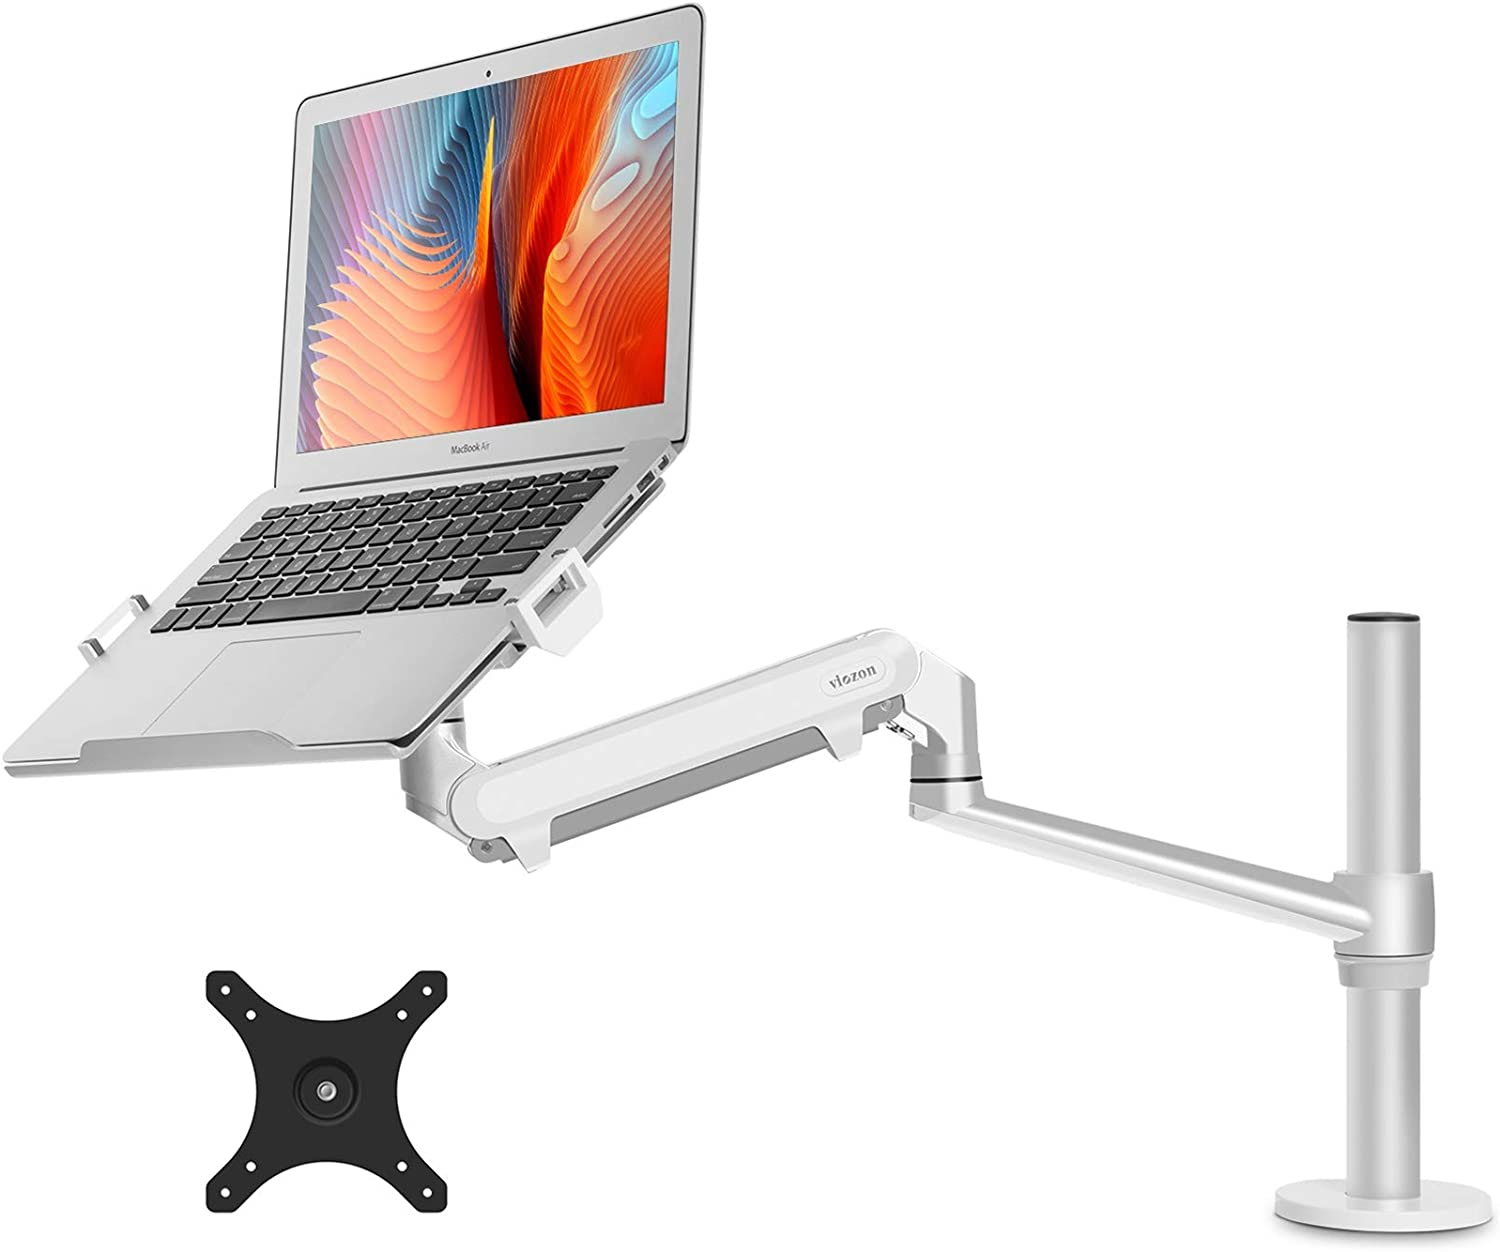 "viozon Monitor or Laptop Mount, Single Gas Spring Arm Desk Stand/Holder for 17-32"" Computer Monitor, Extra Laptop Tray Fits 12-17"" Laptops/Notebook(1S-PlusS)"